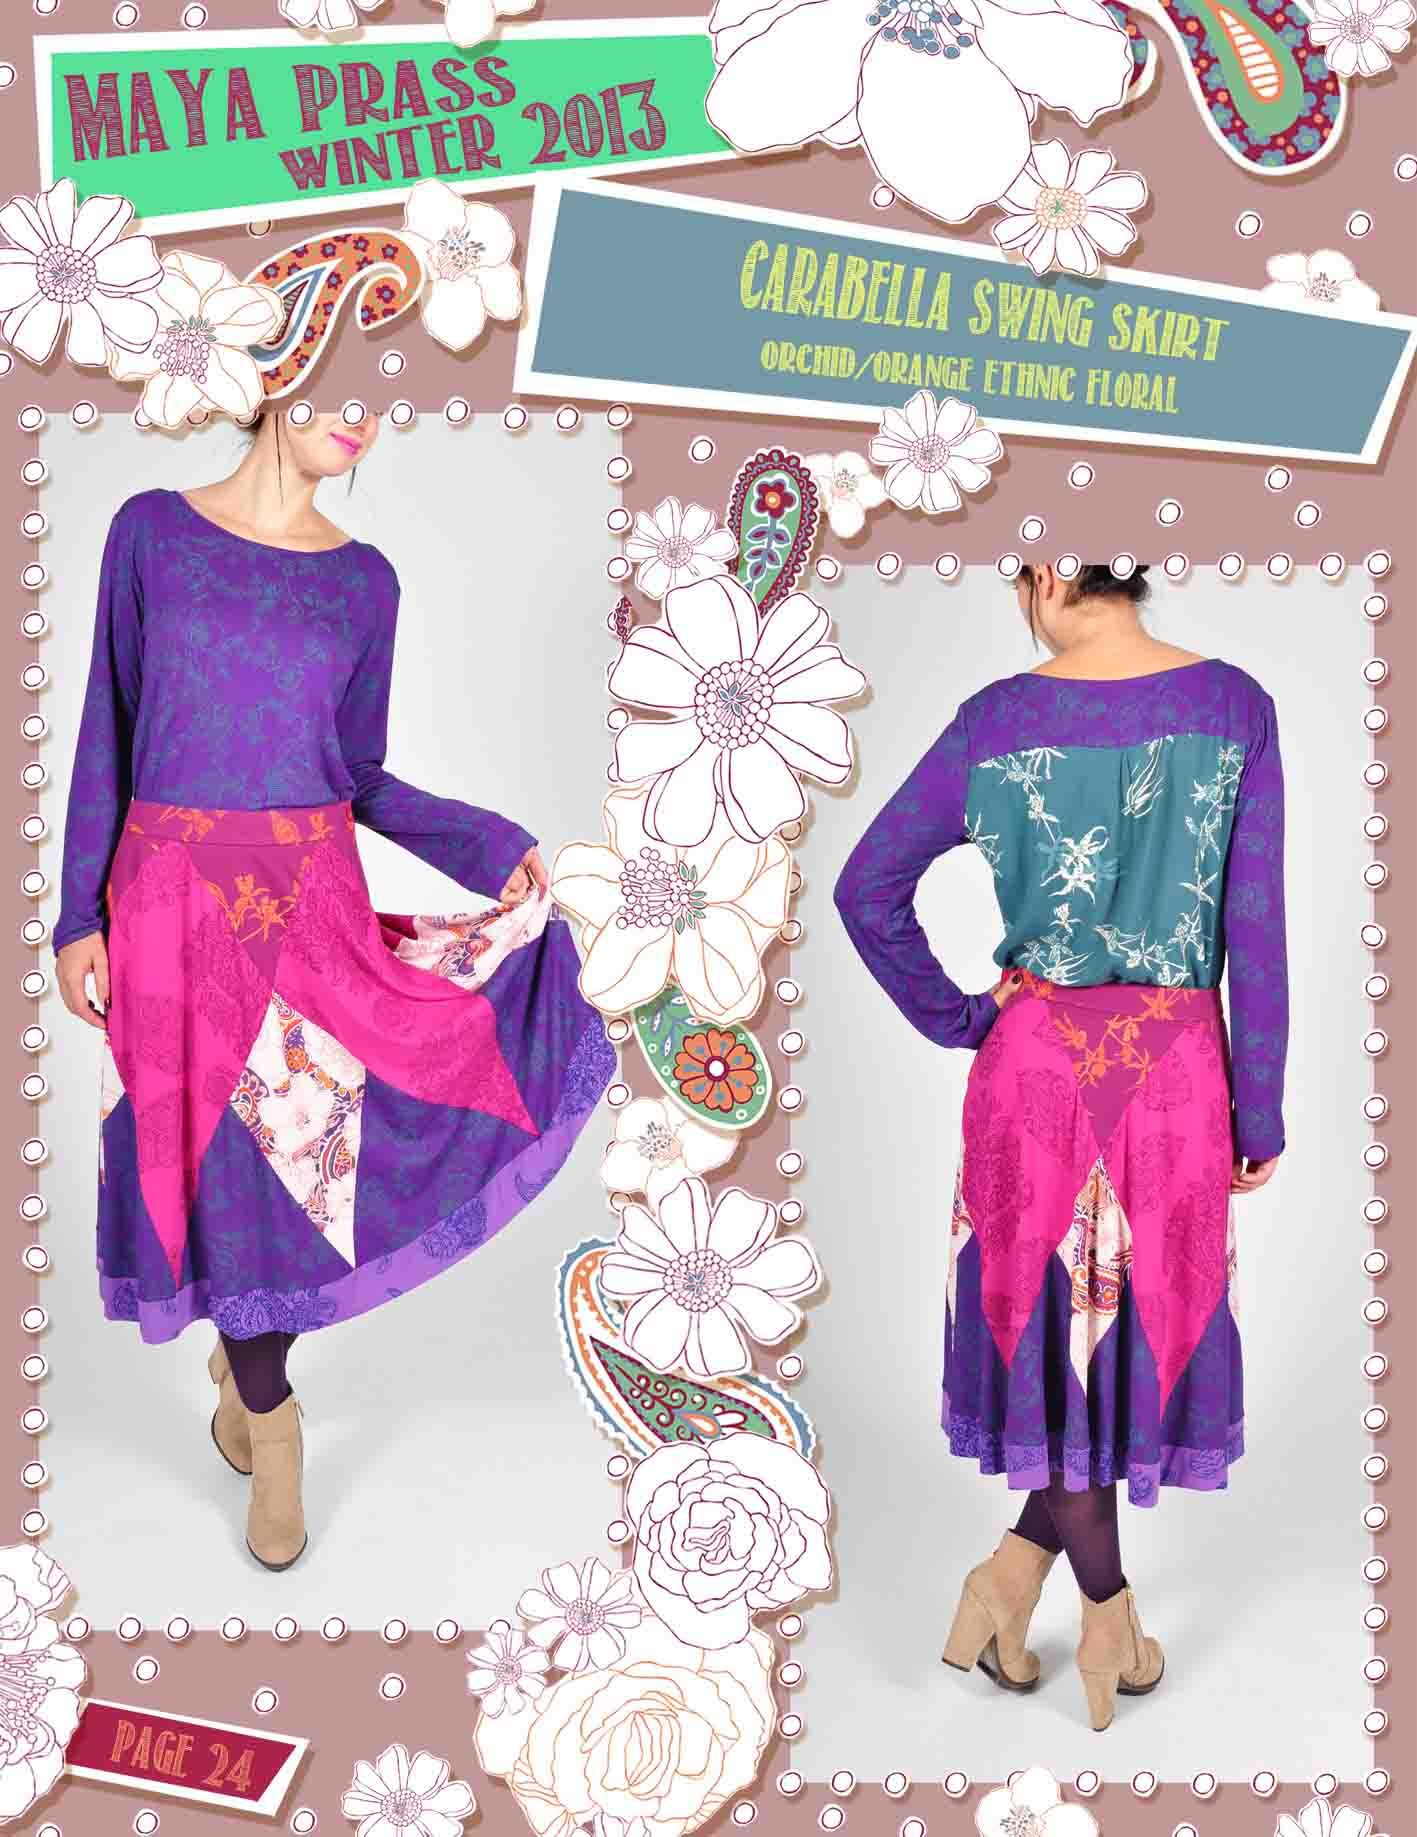 Carabella skirt orchid Ethnic Floral